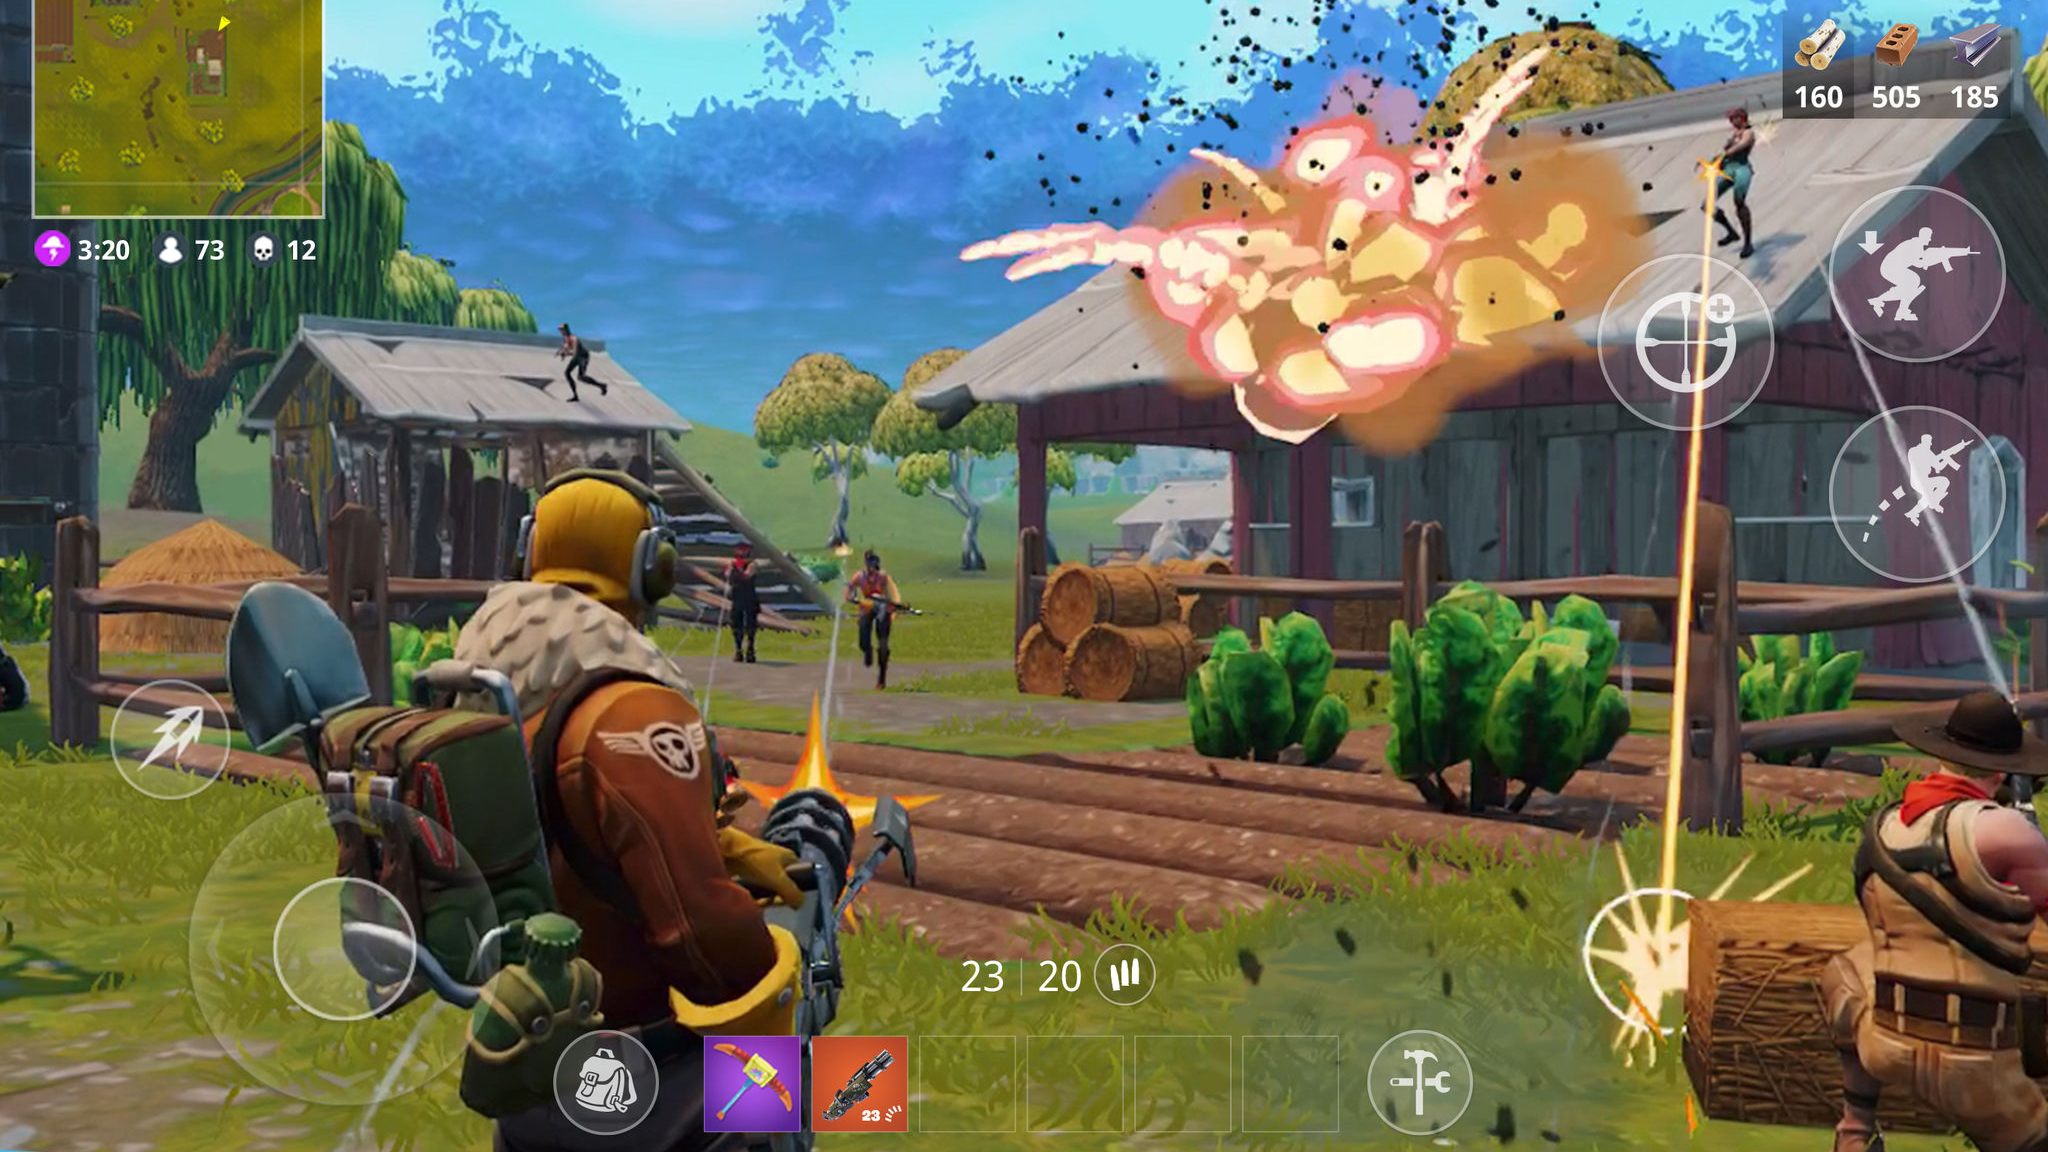 fortnite creative mode just launched for all players here s why you should care - the block fortnite creative